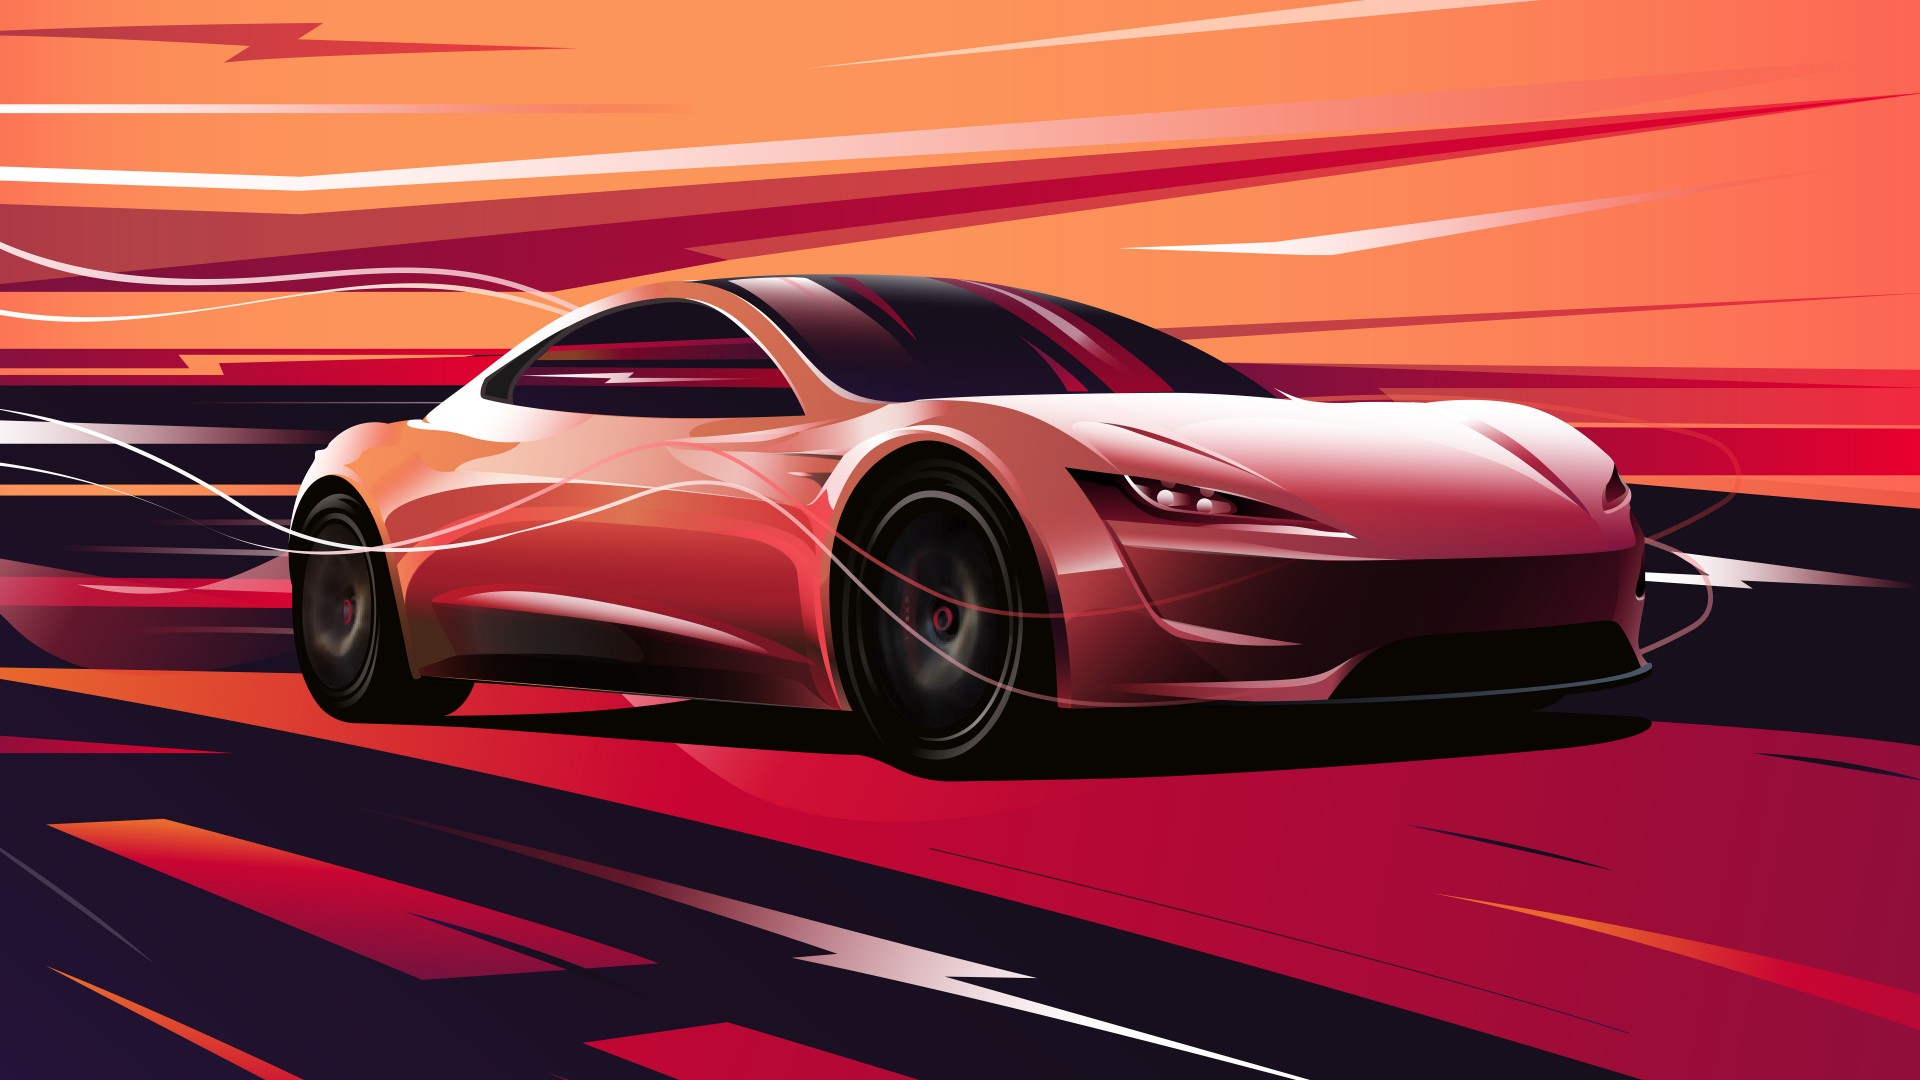 Iphone 5s Wallpaper Hd 3d Tesla Roadster 2020 4k 8k Wallpapers Hd Wallpapers Id